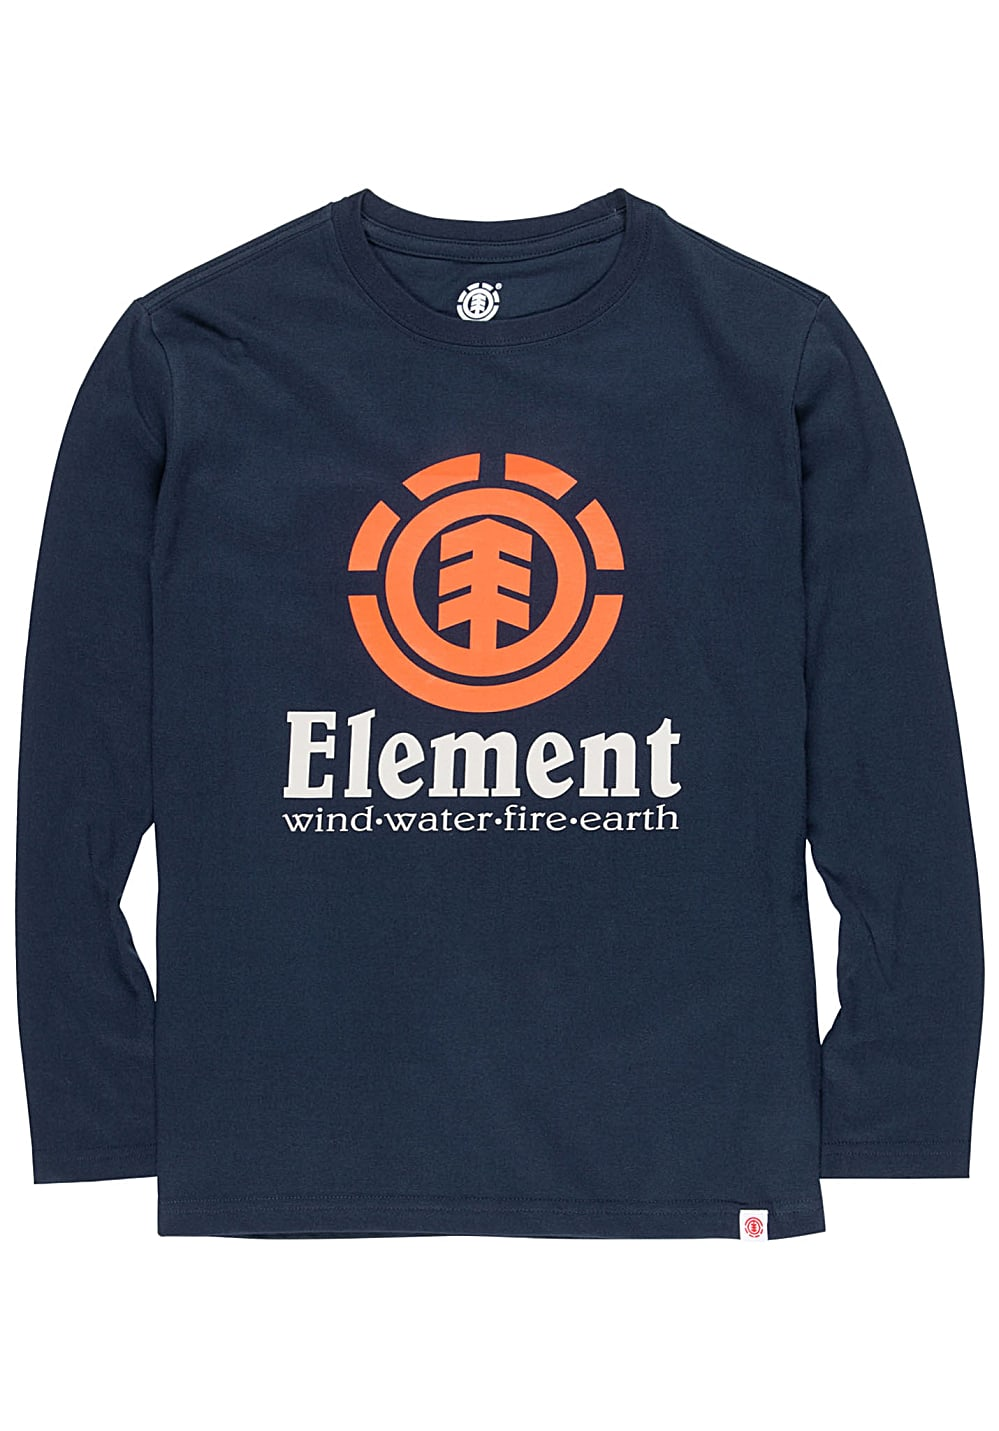 Boysoberteile - Element Vertical Langarmshirt für Jungs Blau - Onlineshop Planet Sports